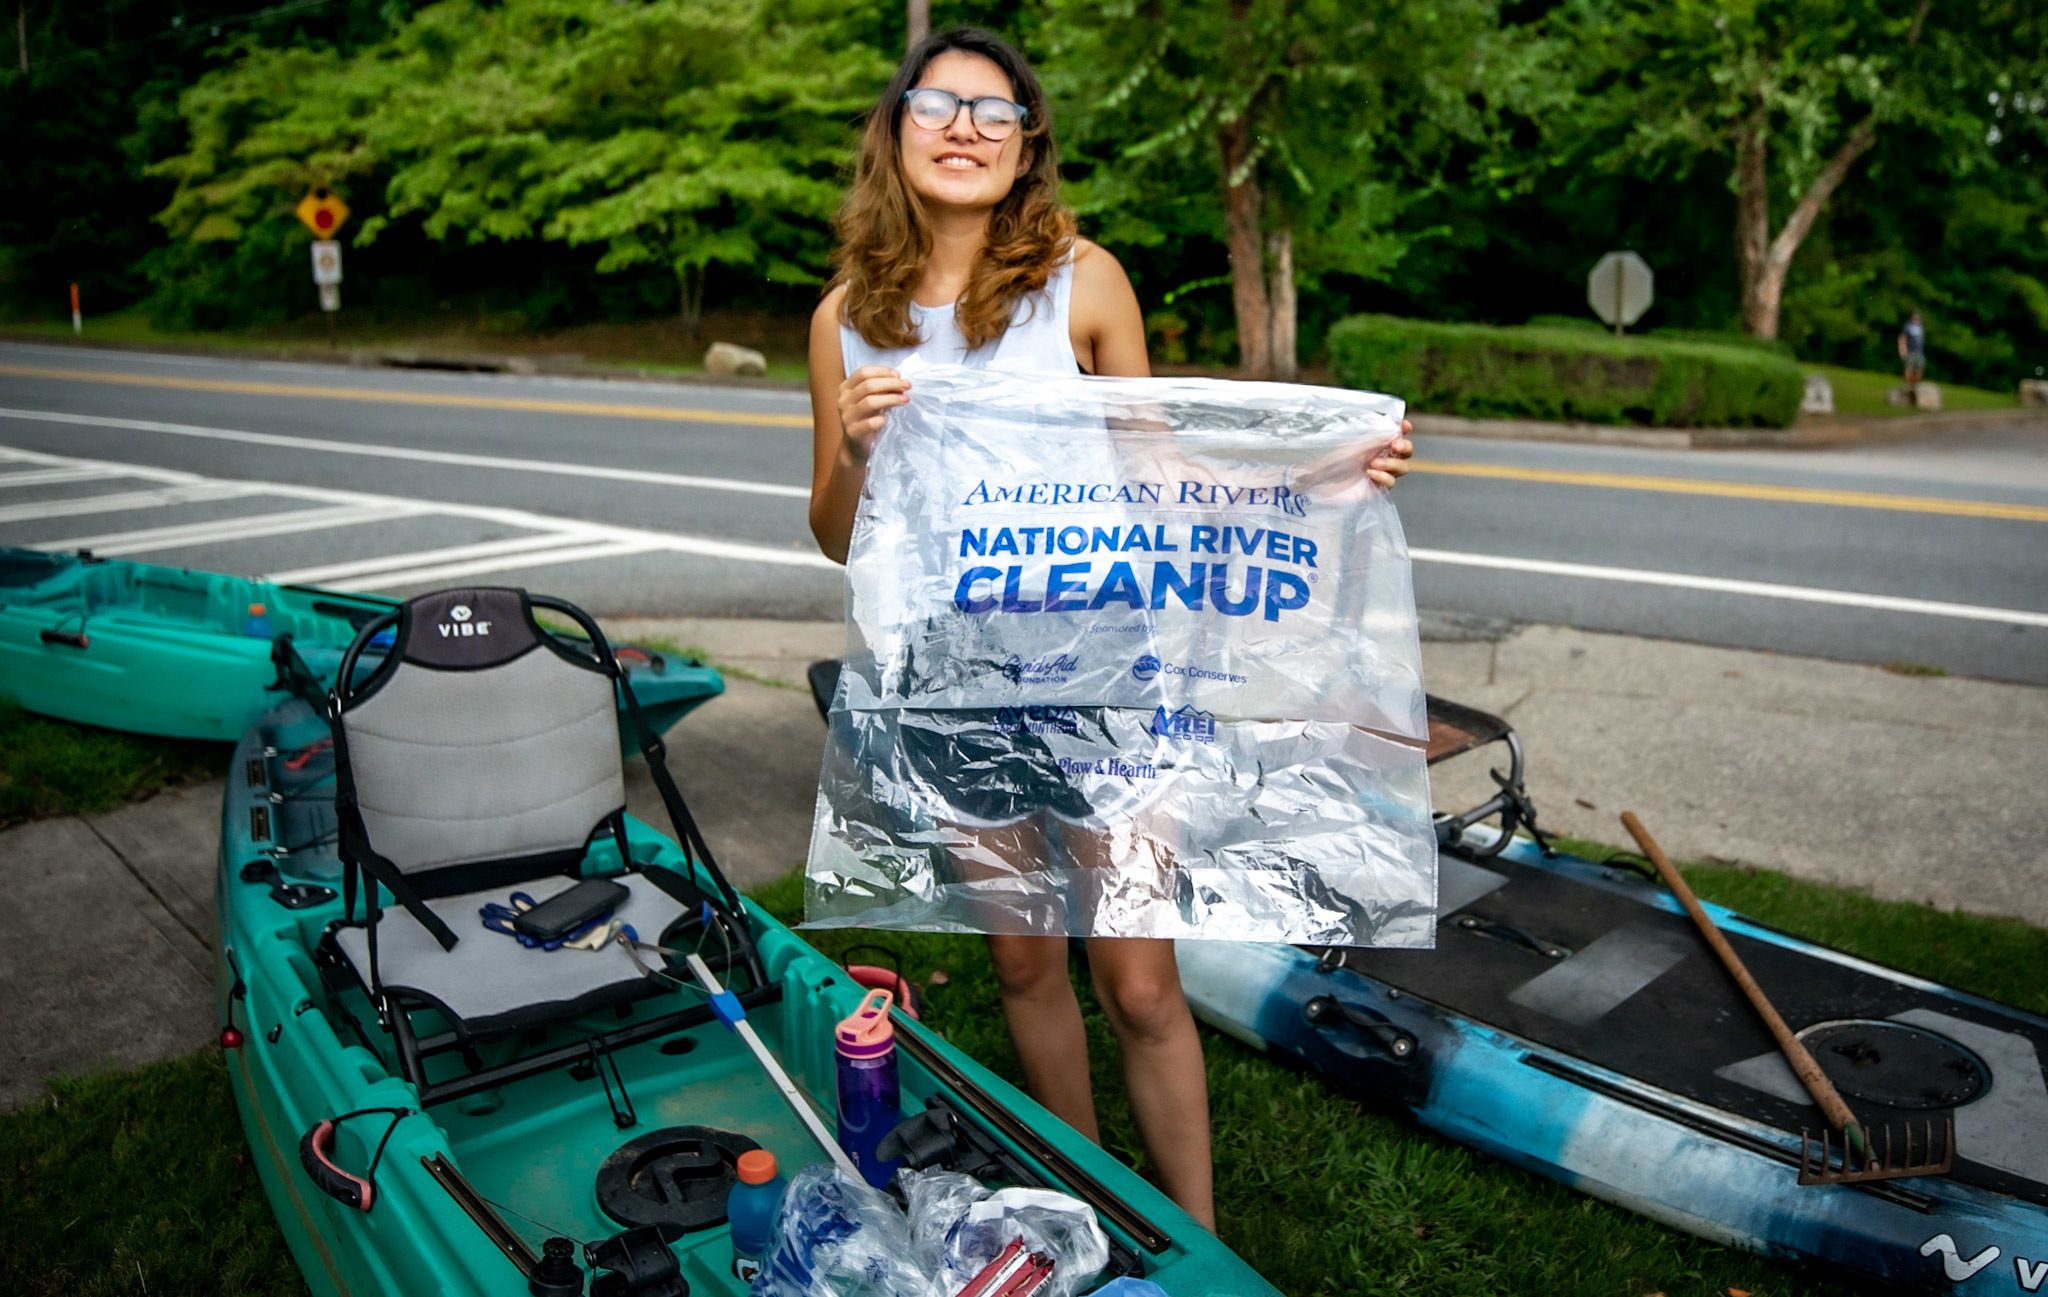 Smiling cleanup volunteer with bag and kayak